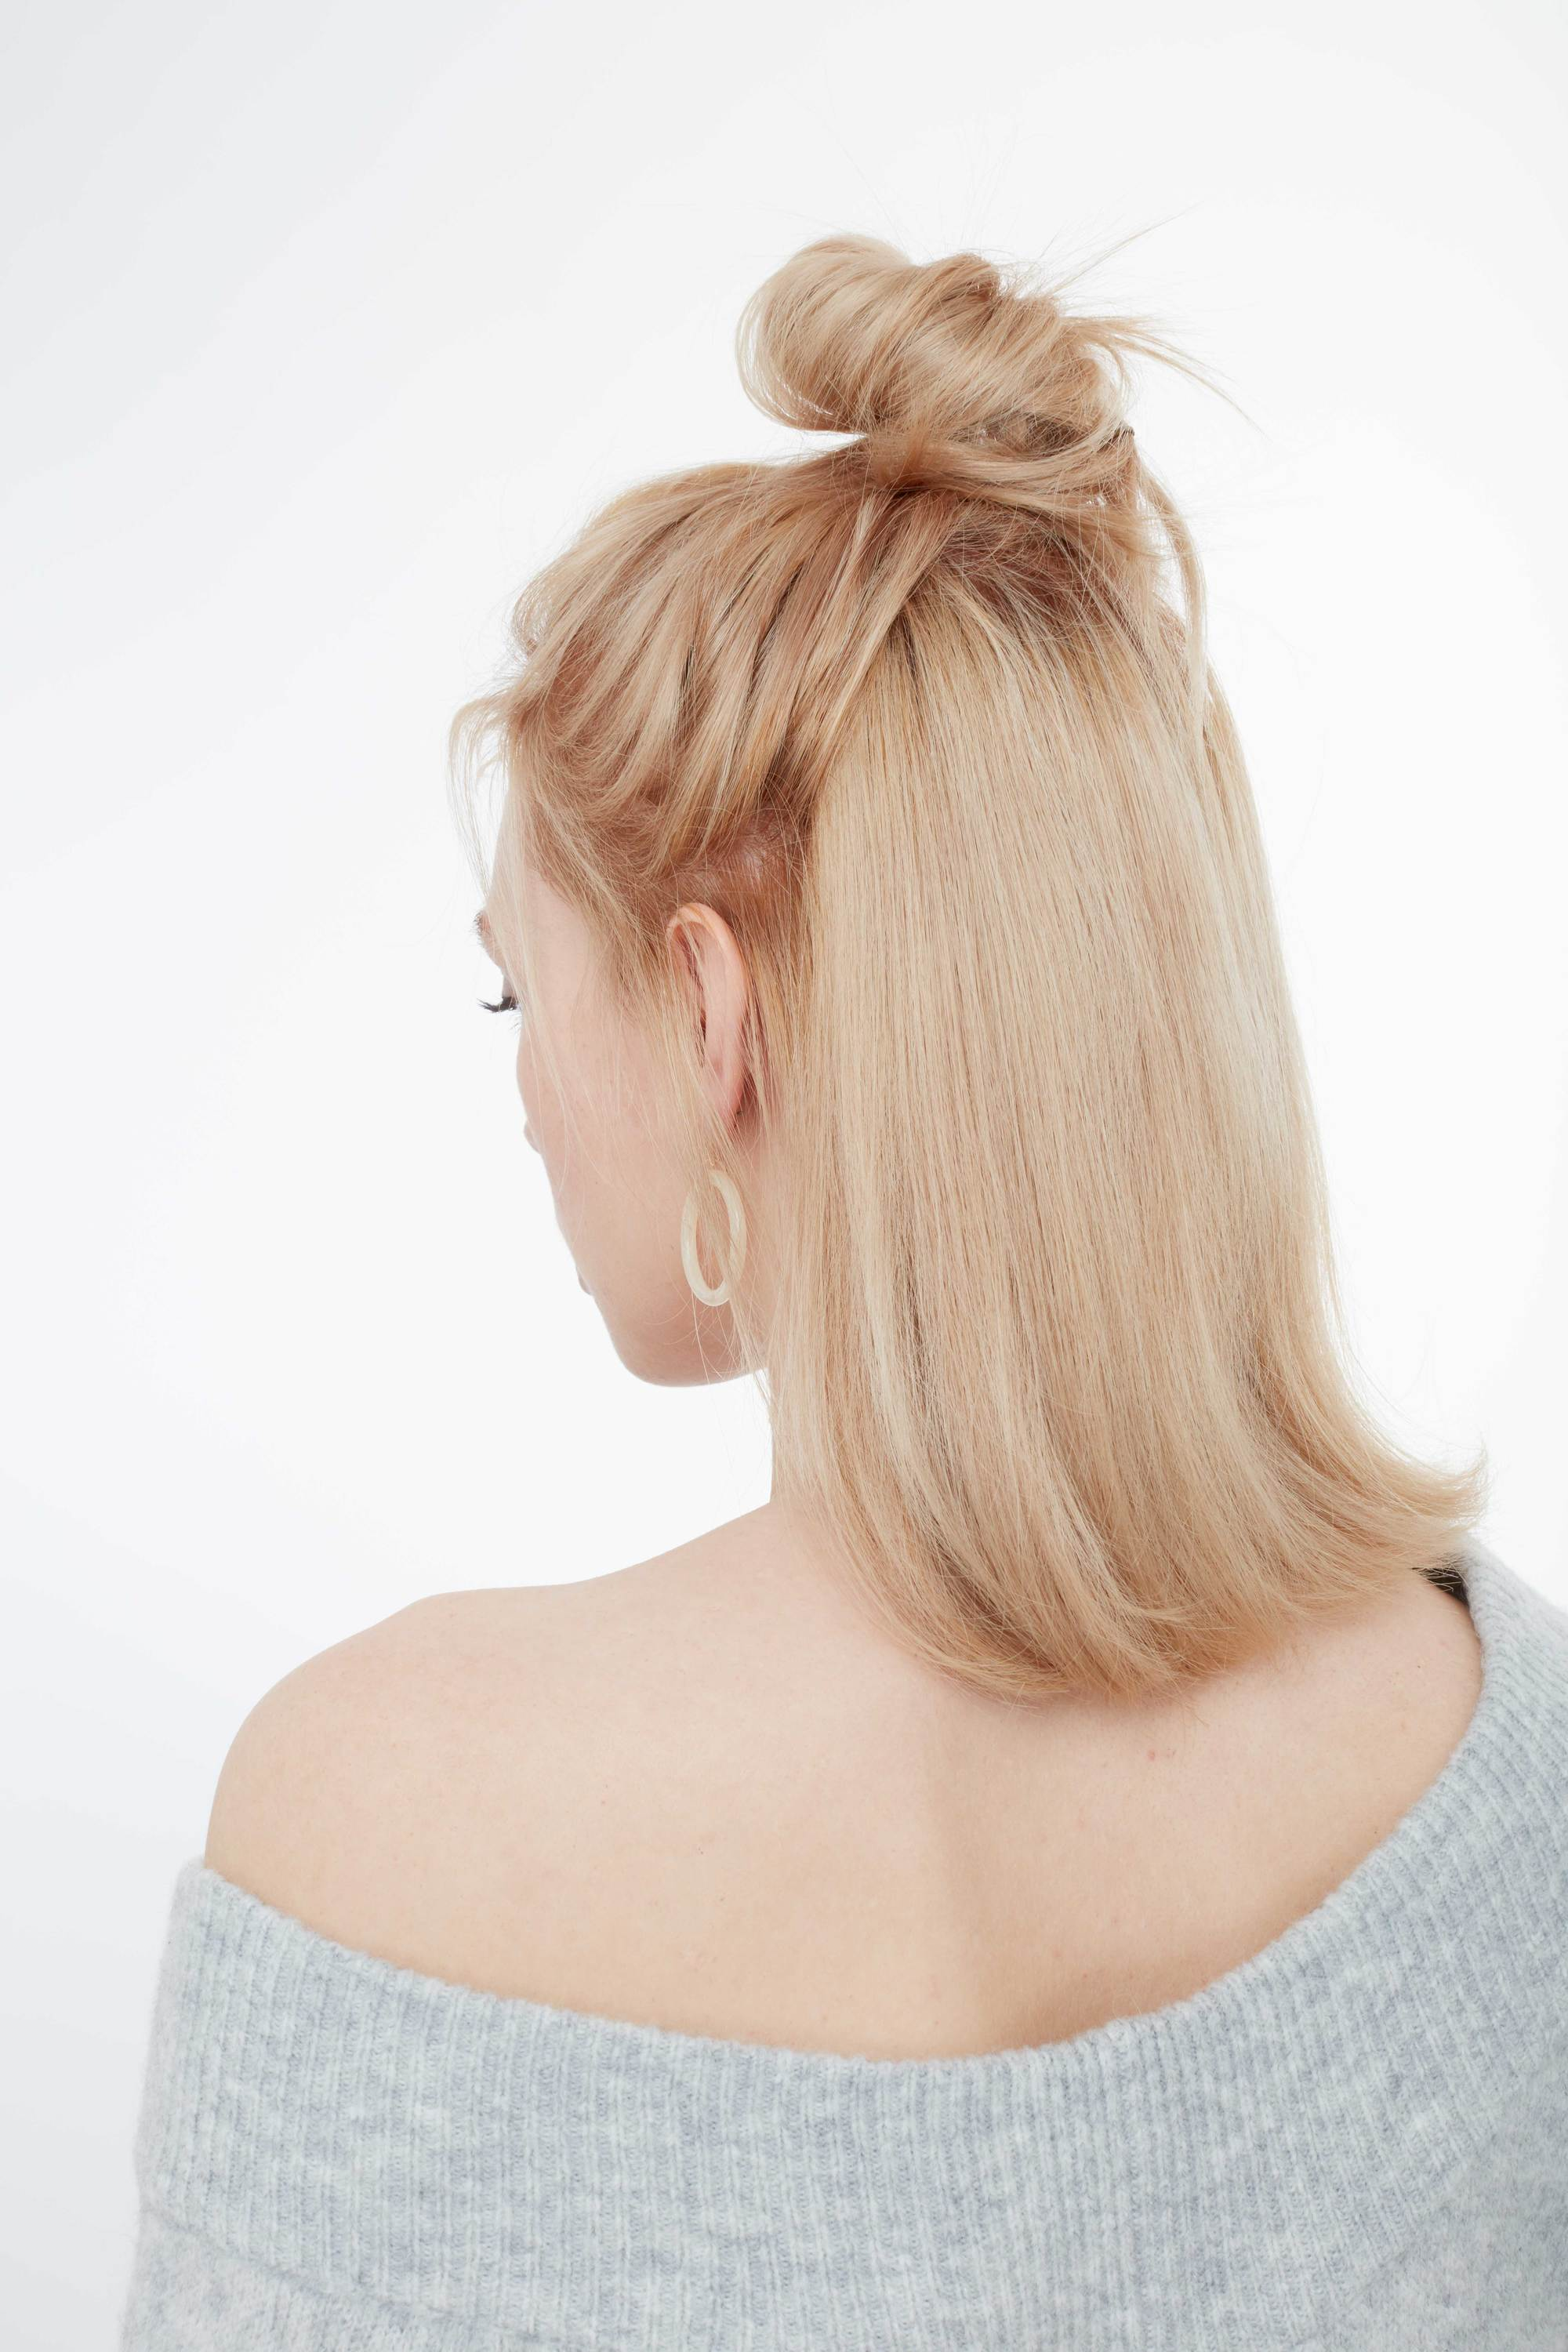 29 Pretty Prom Hairstyles For Short Hair 2019